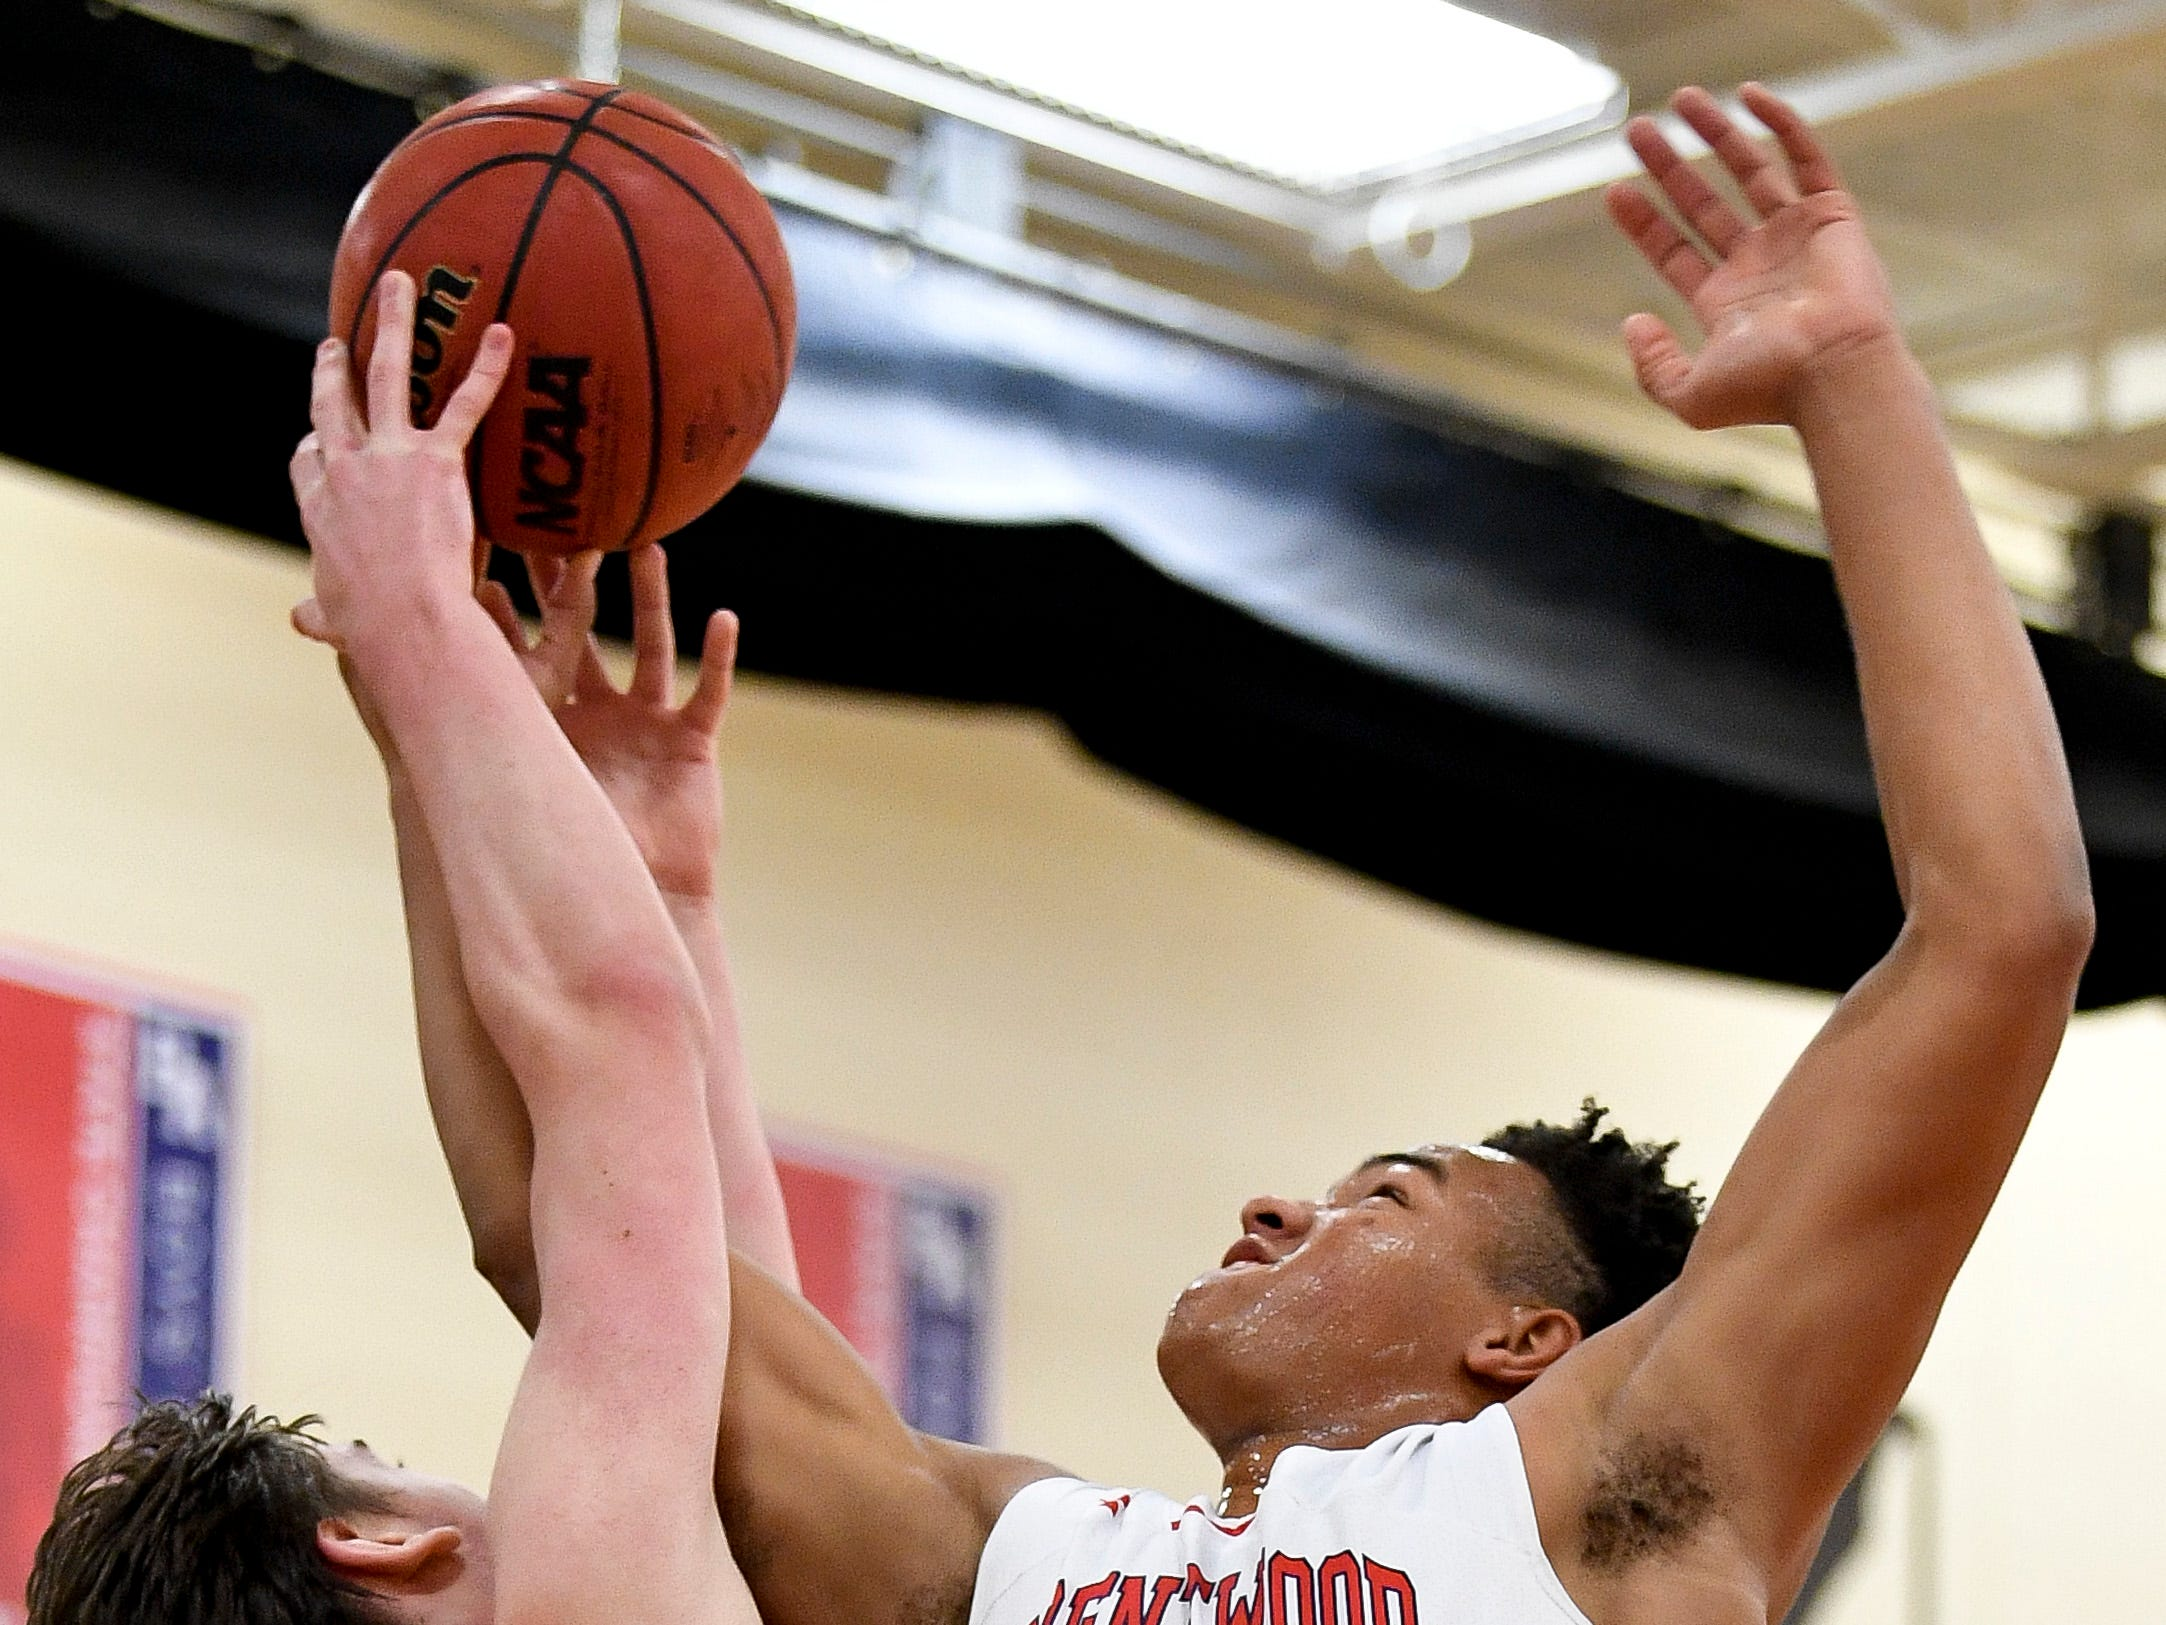 Pope John Paul II's Taggart Patterson (35) battles Brentwood Academy's Nate Clifton (45) during the first half at Brentwood Academy in Brentwood, Tenn., Friday, Jan. 4, 2019.